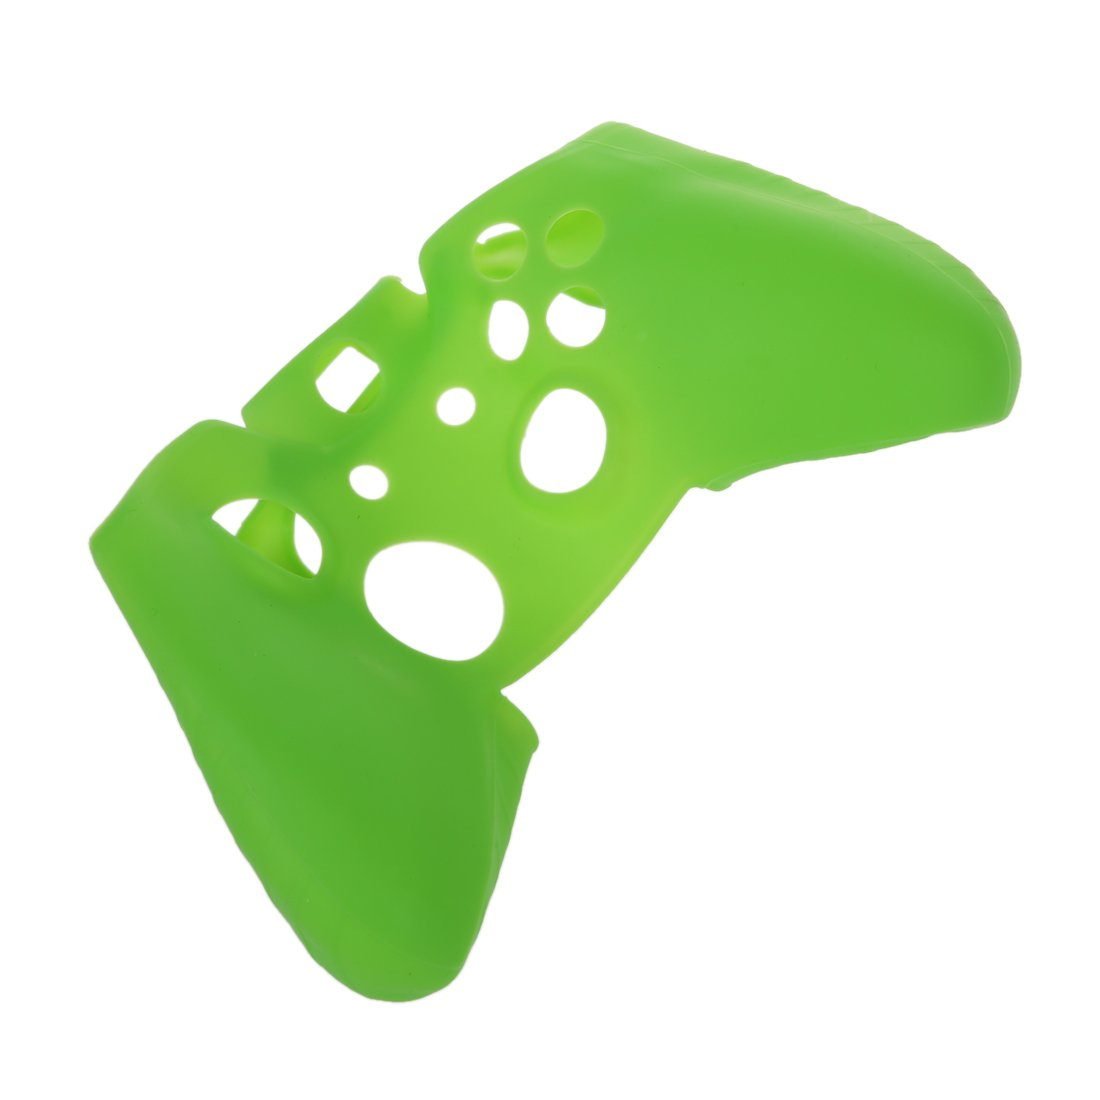 SODIAL(R) Soft Silicone Gel Protective Skin Cover Case for XBOX ONE Controller Green by SODIAL(R) (Image #4)